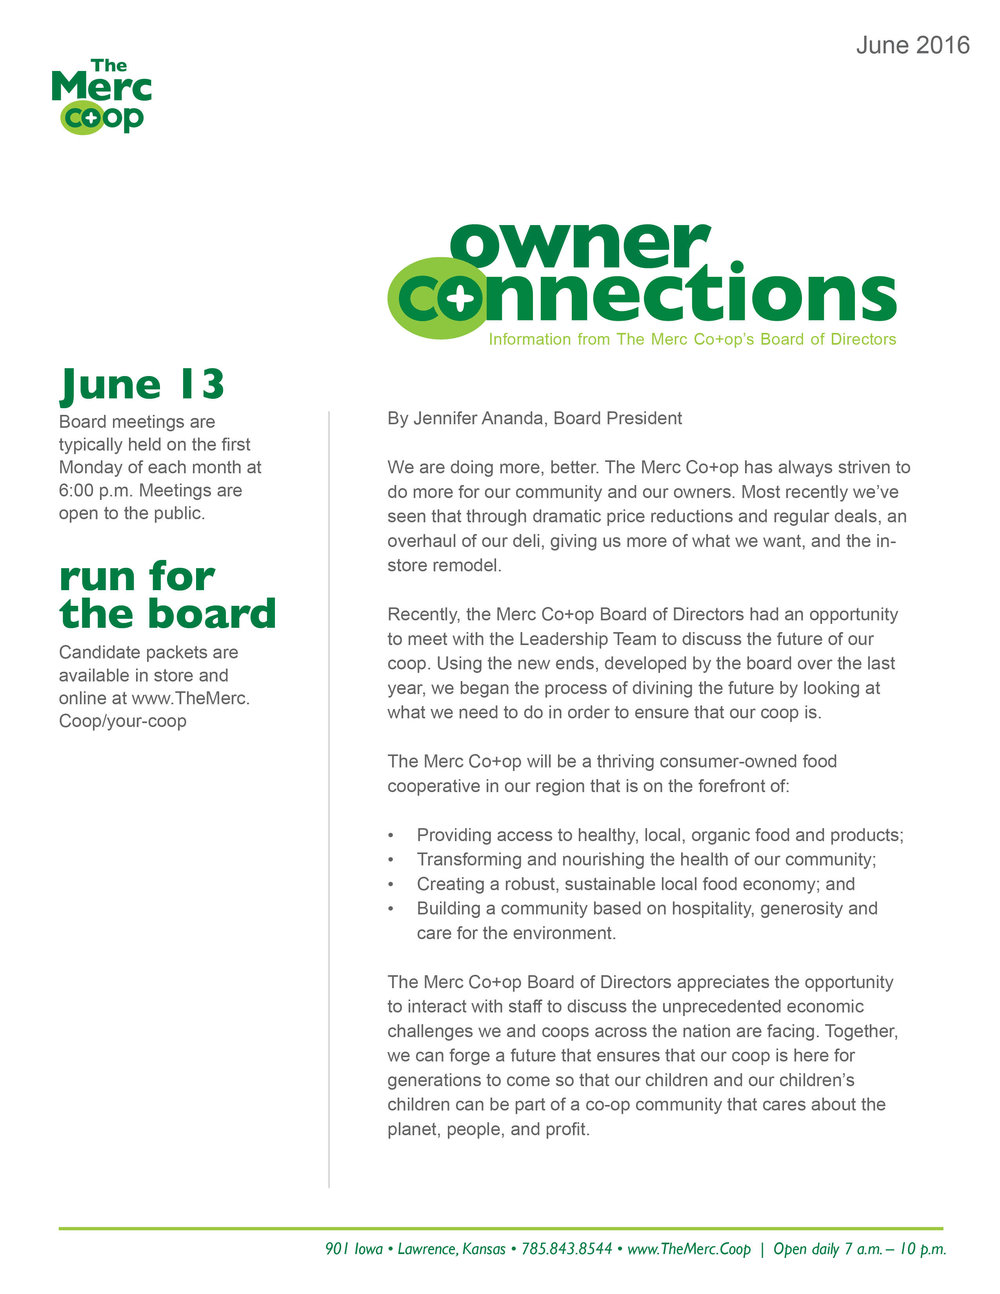 OwnerConnectons_June2016.jpg